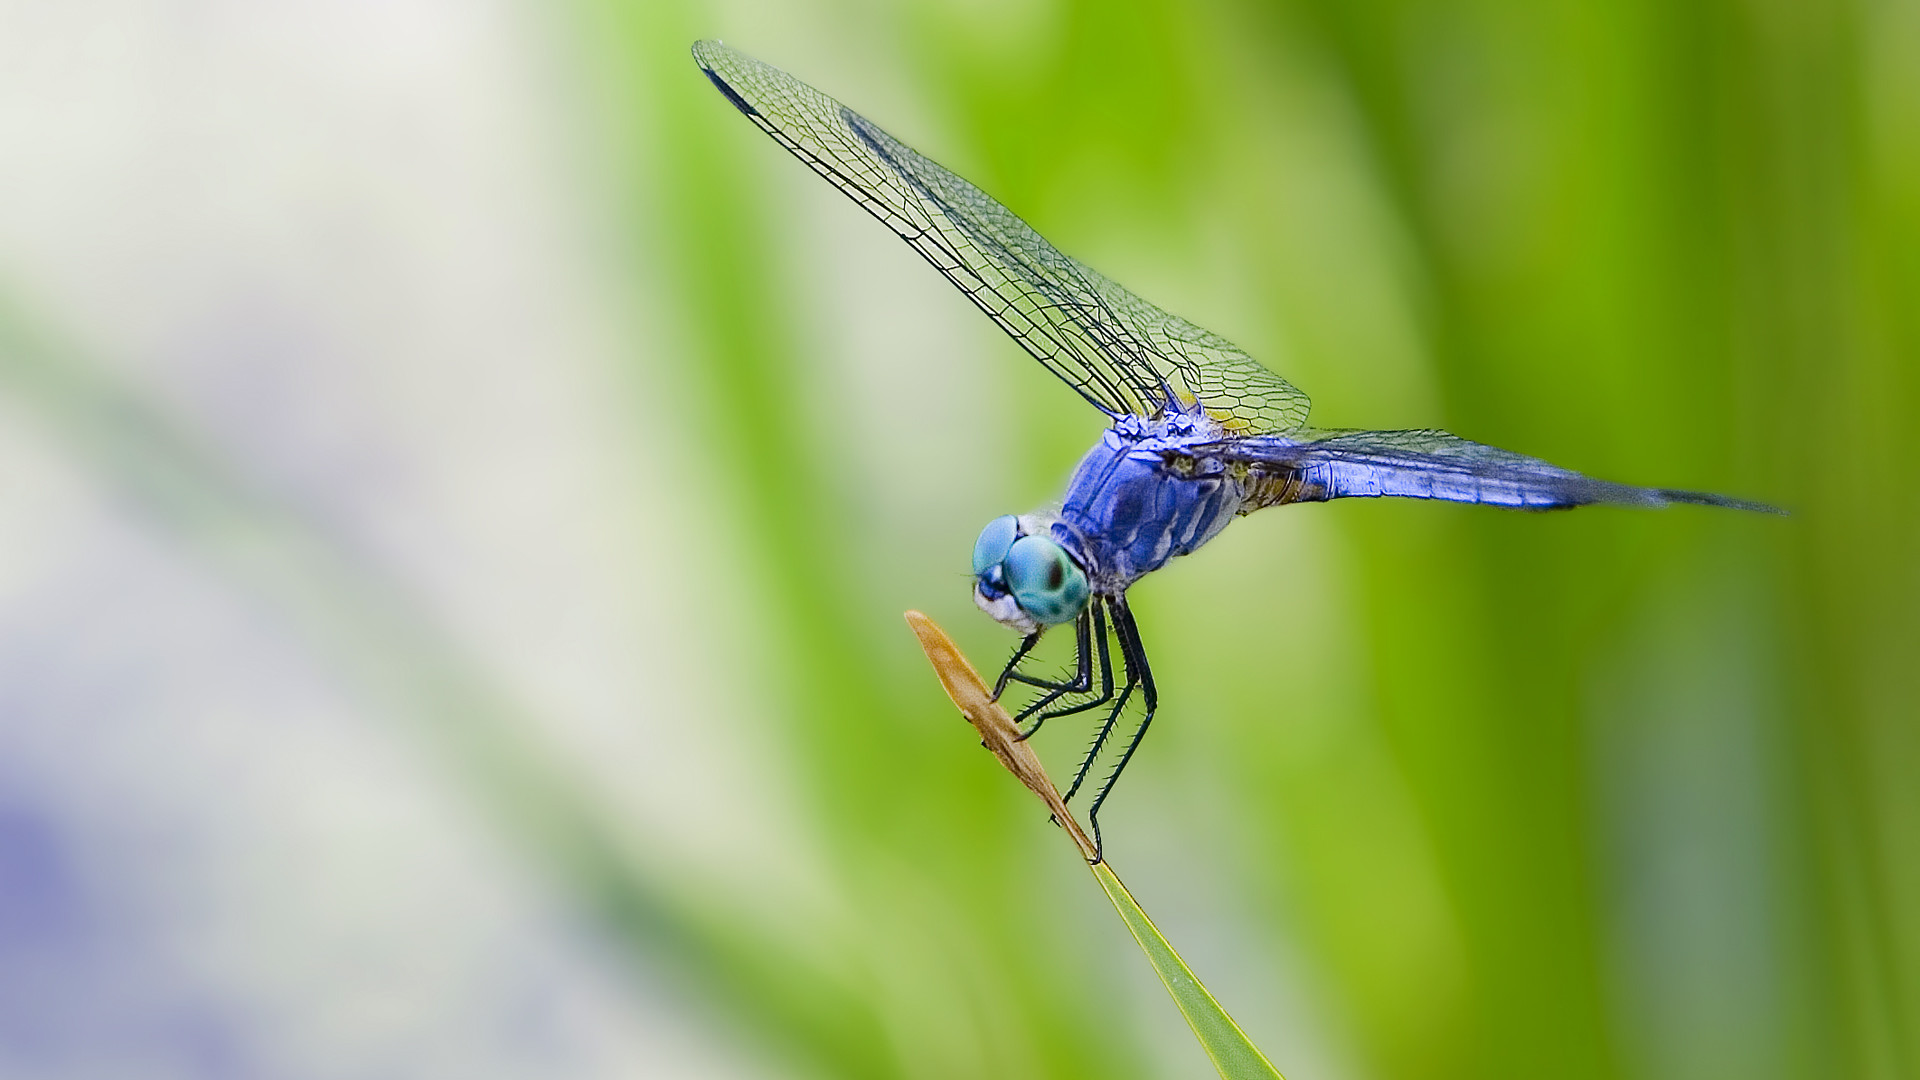 beautiful purple dragonfly photo wallpaper 1920x1080